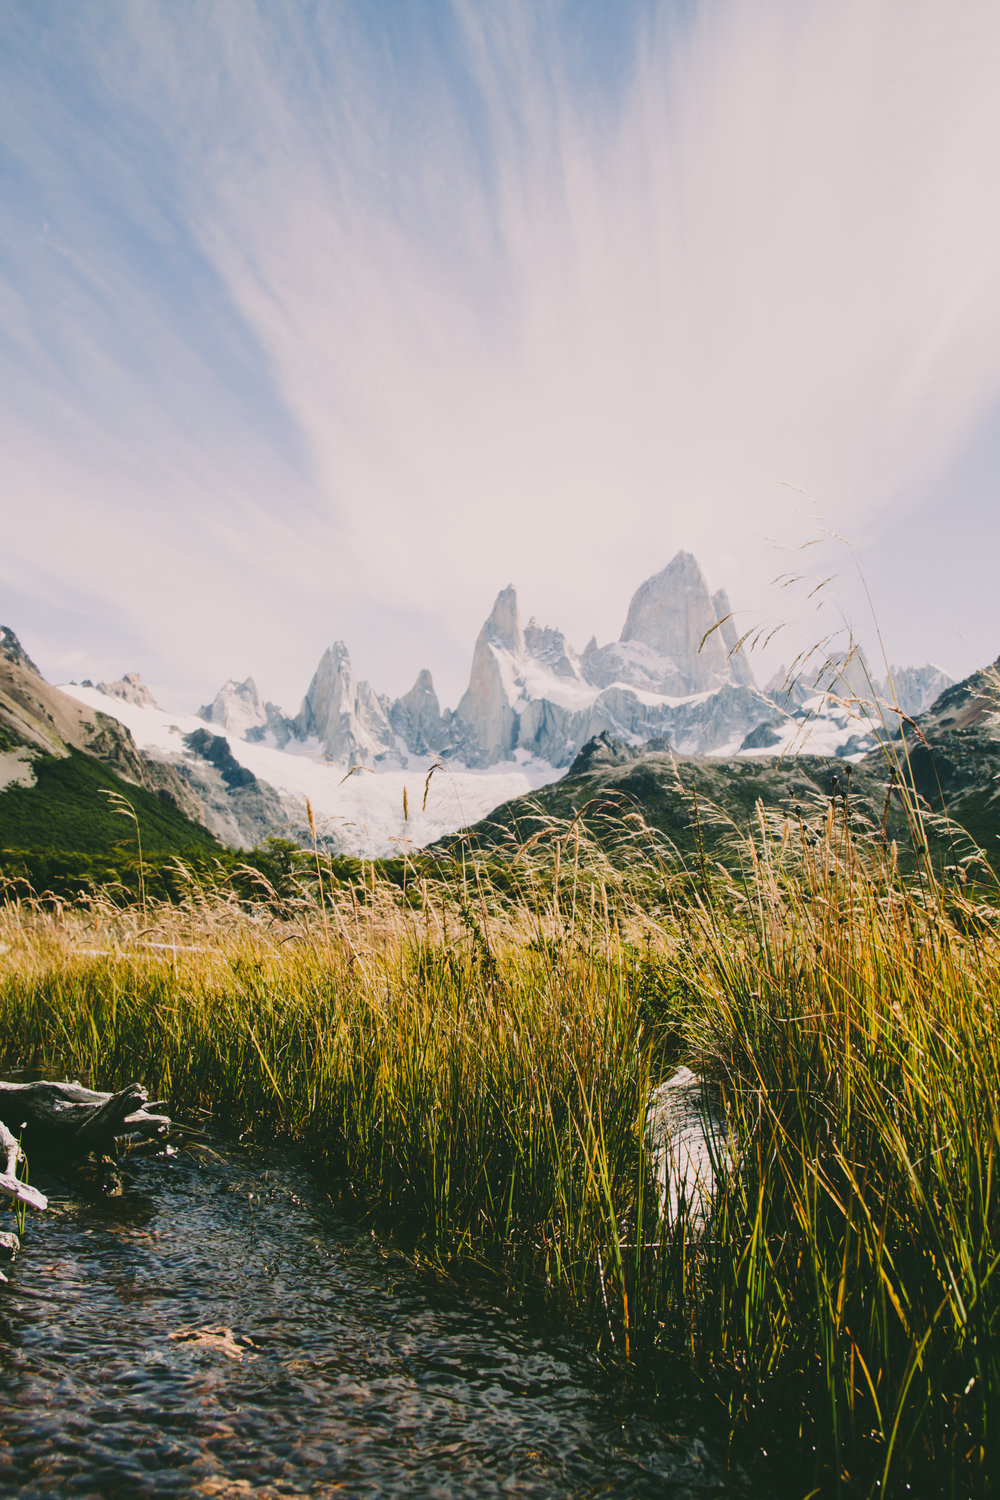 South American Adventure (14 days) - This journey will take you through cultural epicenters, along windy hills, incredible waterfalls, empty beaches, and bustling capital cities. Colorful houses will invite you to discover a culture like it doesn't exist in Europe, you will taste mouth-watering cuisine and talk to the friendliest locals you can imagine. Enjoy calm weathers, beaches, and sunshine, as well as ice and the cold and immerse yourself in a very unique culture. No matter the pace or activities you chose, this trip will leave you awe-struck and wanting to come back for more.(*please ignore pricing at the bottom of the itinerary - all trips can be completely customized to your budget and preferences.)